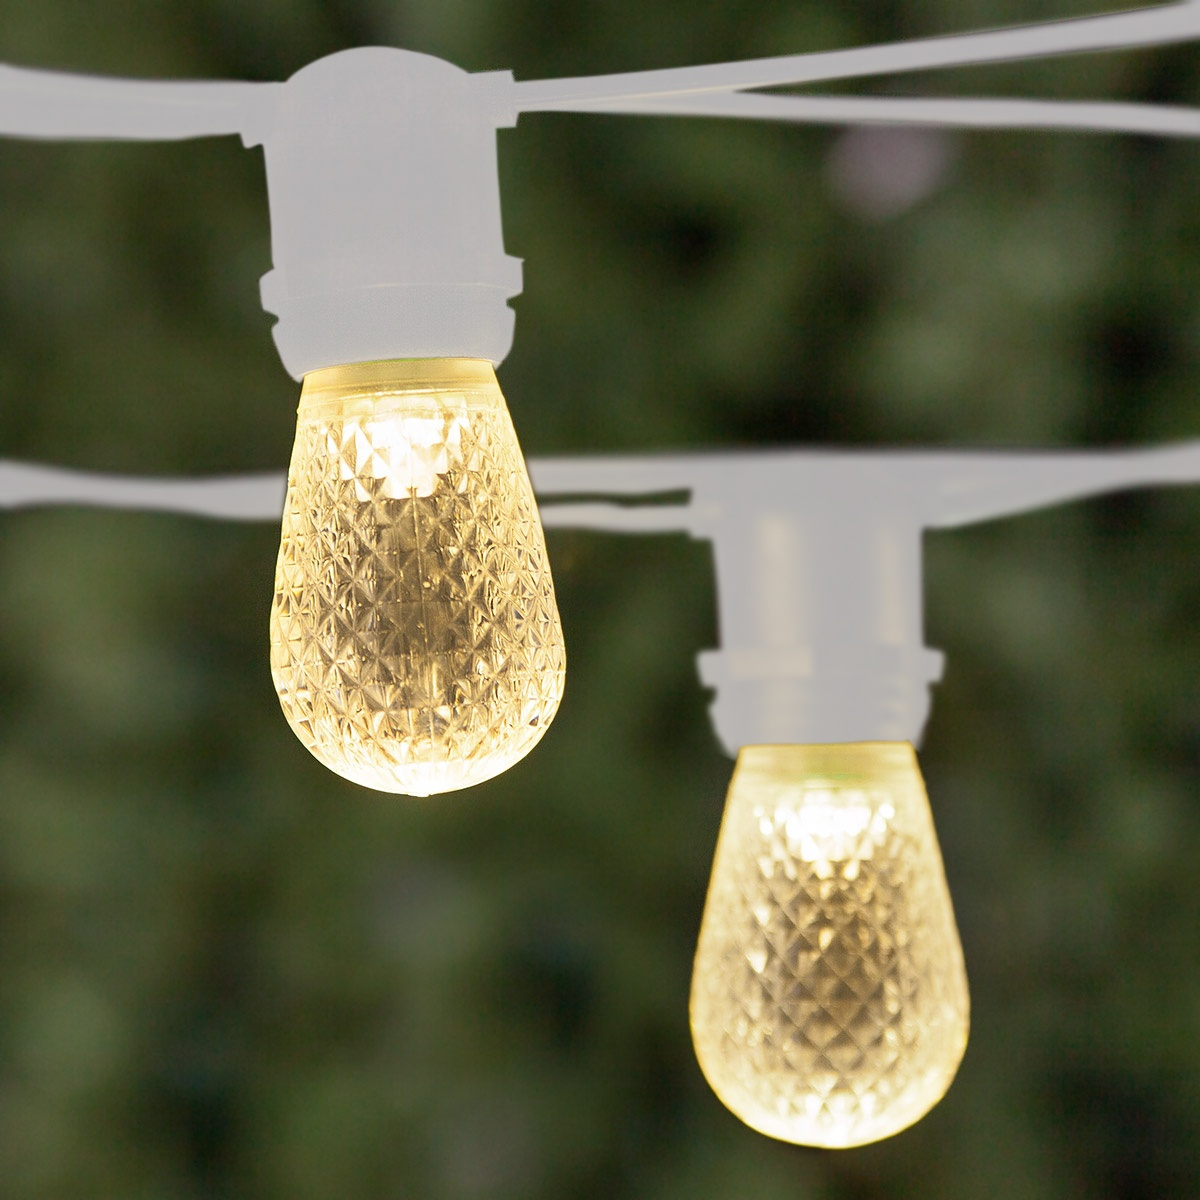 108u0027 Commercial Patio String With 50 S14 Warm White LED Outdoor Patio Lights